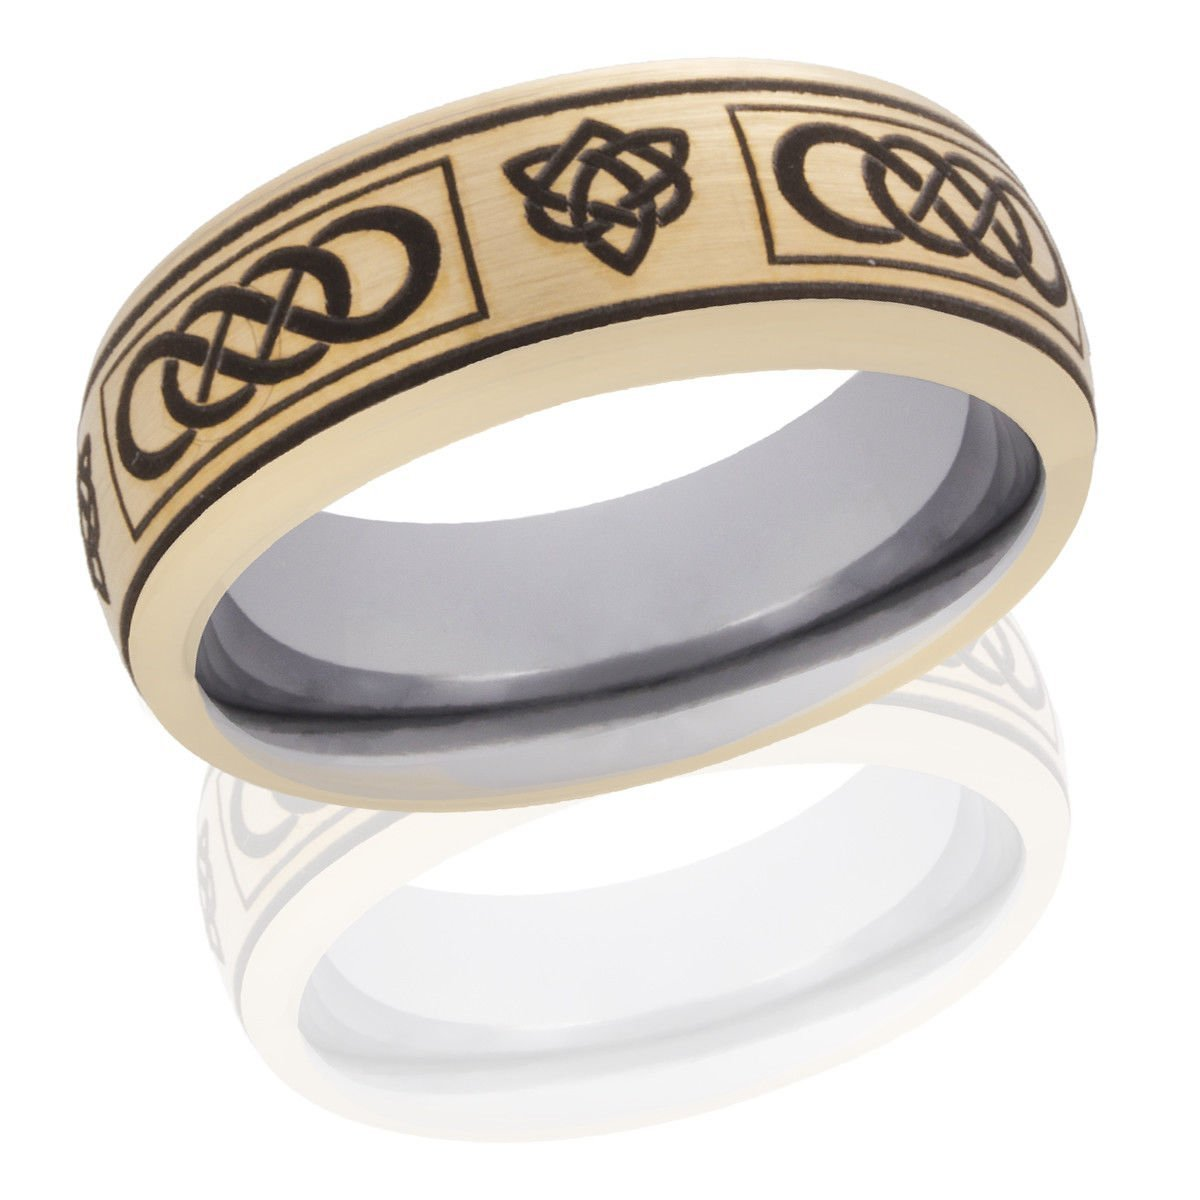 Tungsten Ring Double Infinity Celtic Trinity Yellow Gold Silver 8mm Hand Made With Free Box